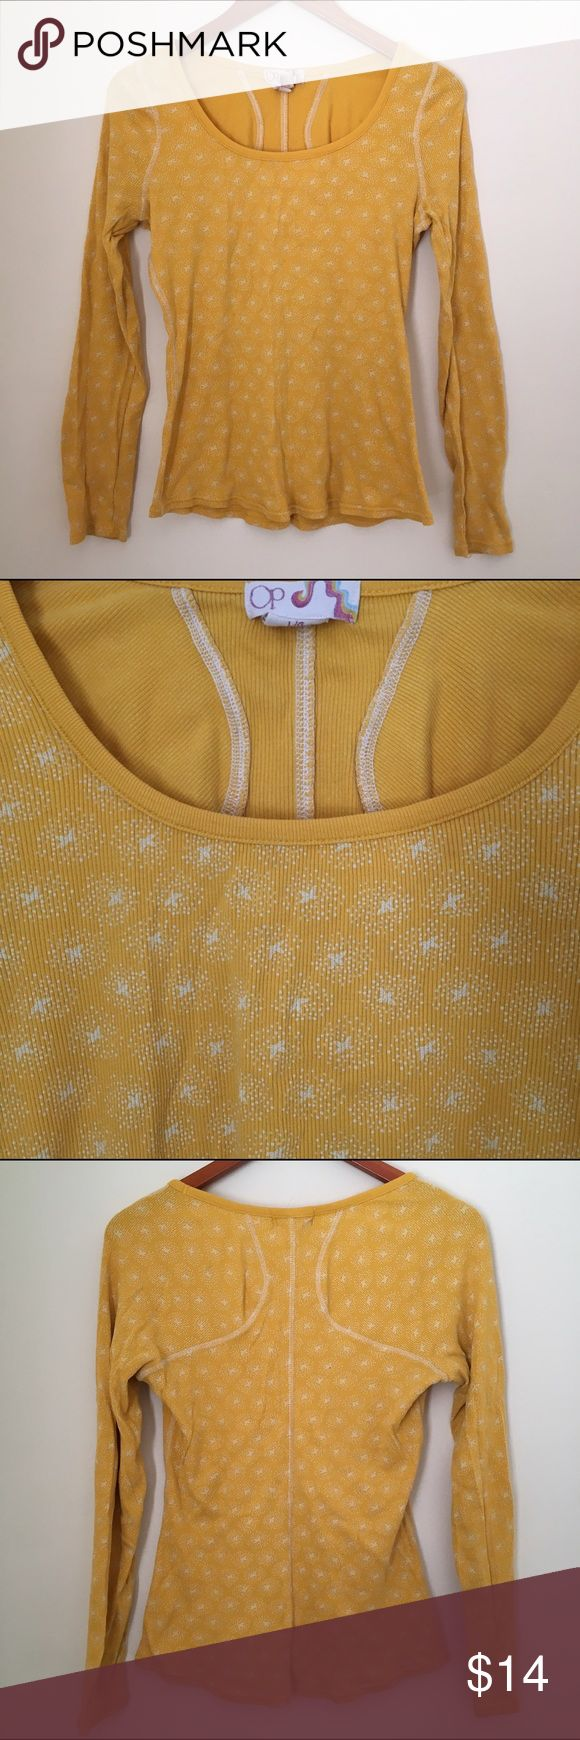 3@$19💝 OP Yellow Print Waffle Henley Tee Jr. Lg Mustard Yellow and white print waffle Henley Tee. Super cute back seaming. In good pre-owned condition. 💝💝💝3 for $19 on over 100 women's and baby items. Bundle, offer, SAVE!💝💝💝 O.P. Tops Tees - Long Sleeve